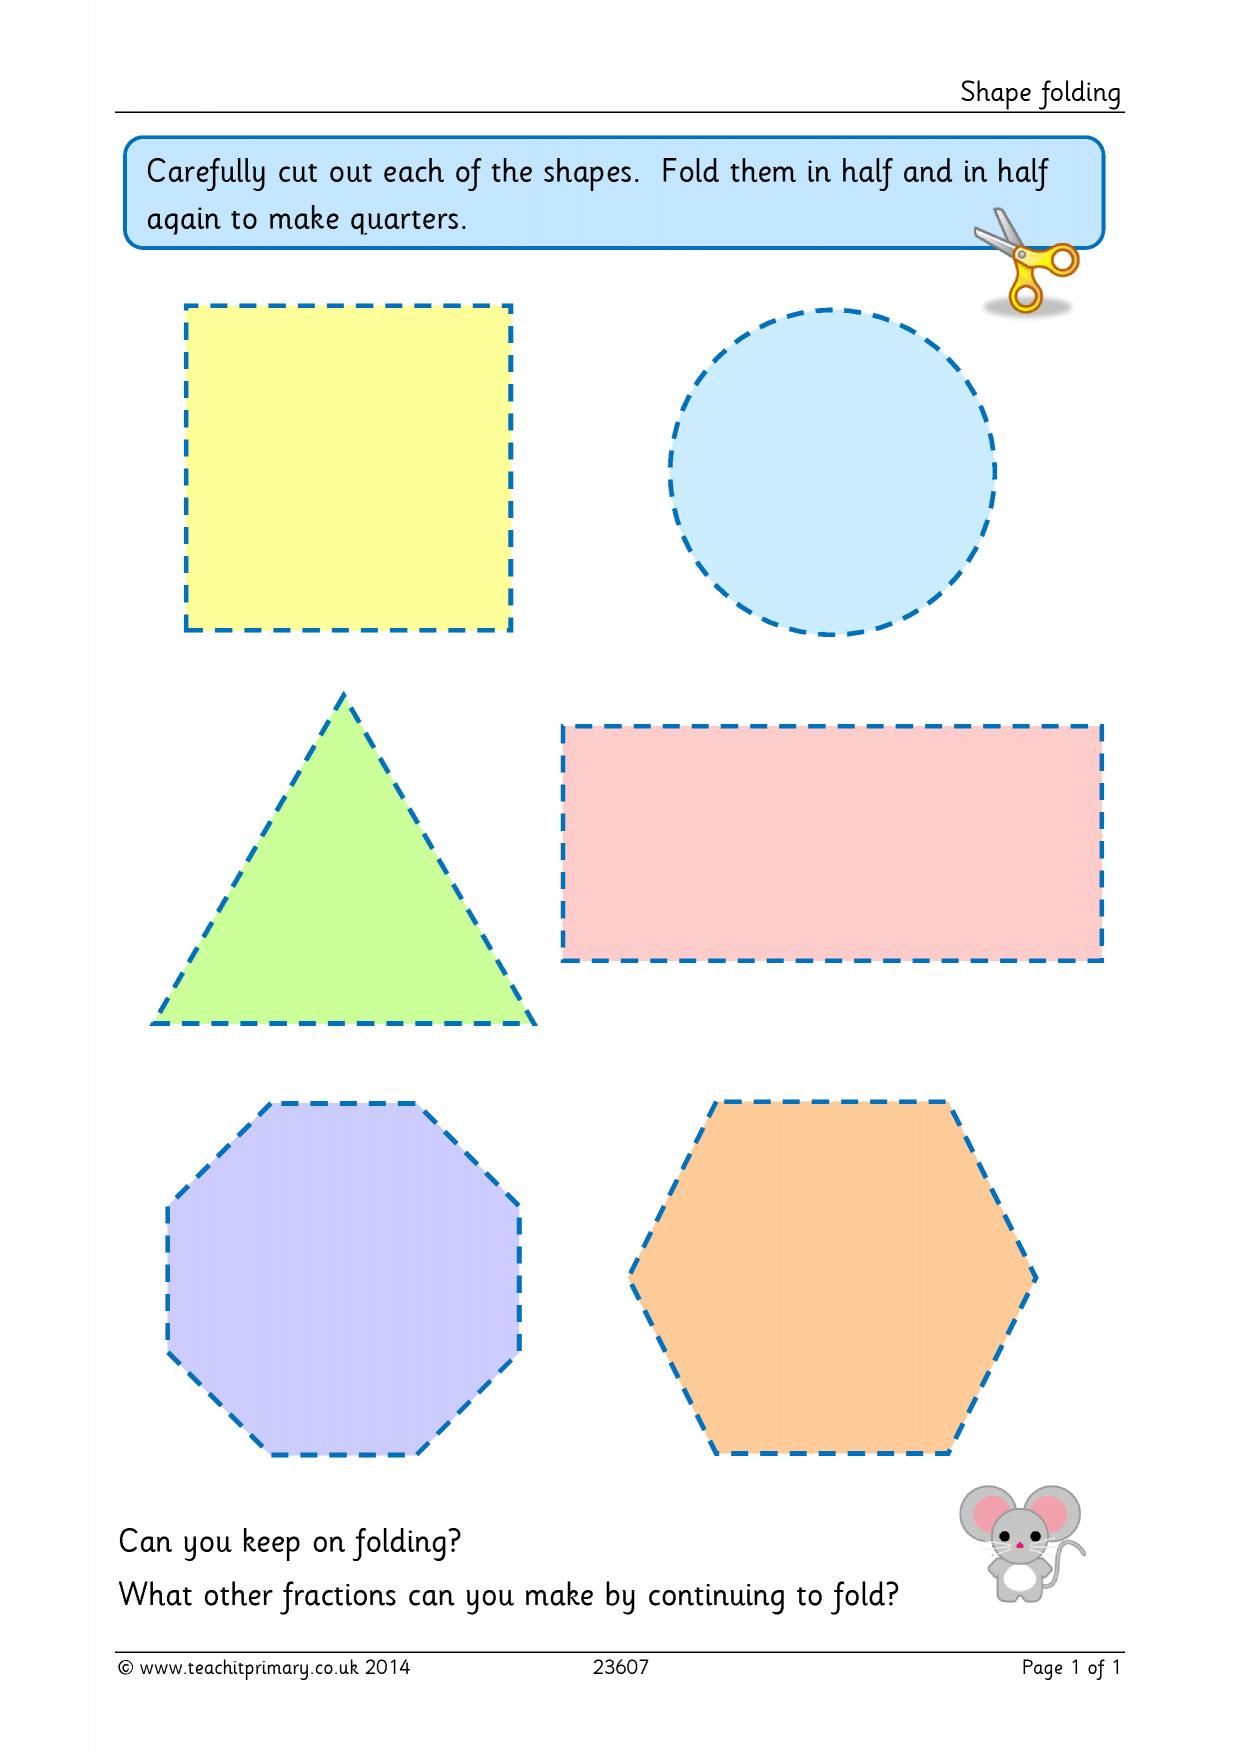 worksheet Fractions Of Shapes shape folding basic fractions home page resource thumbnail